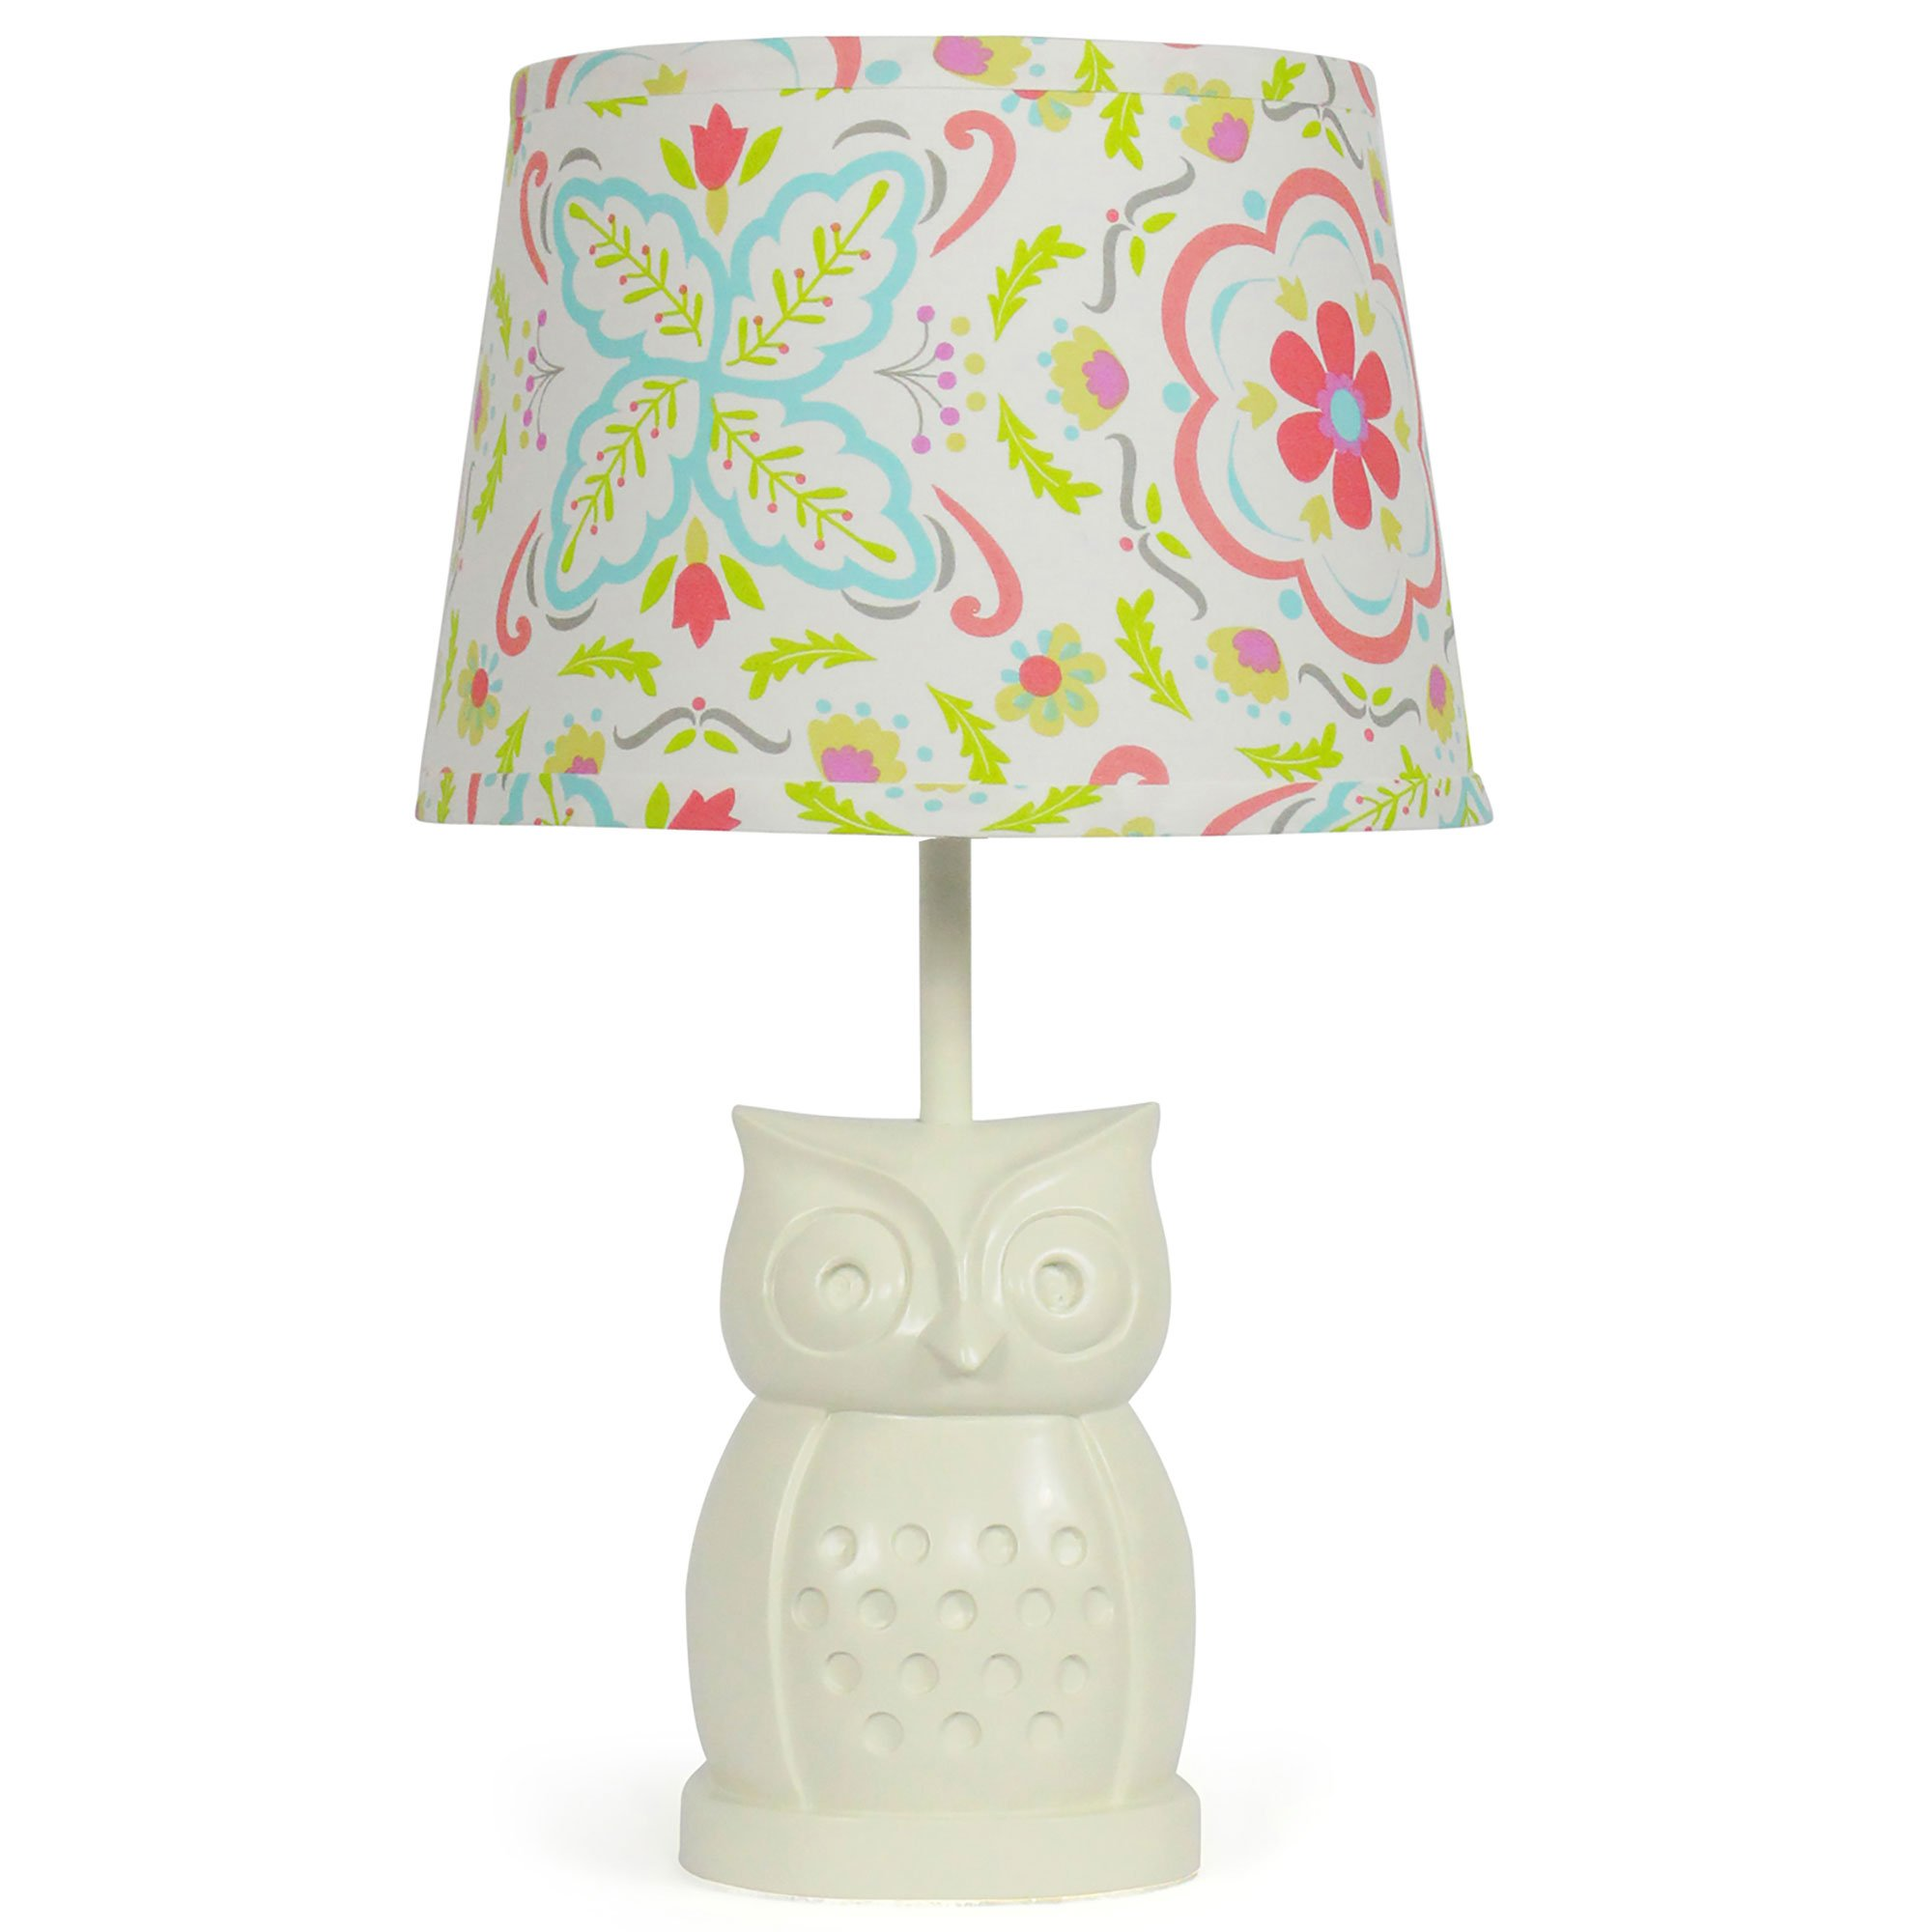 Coral Floral Nursery Lamp Shade with White Owl Base, CFL Bulb Included